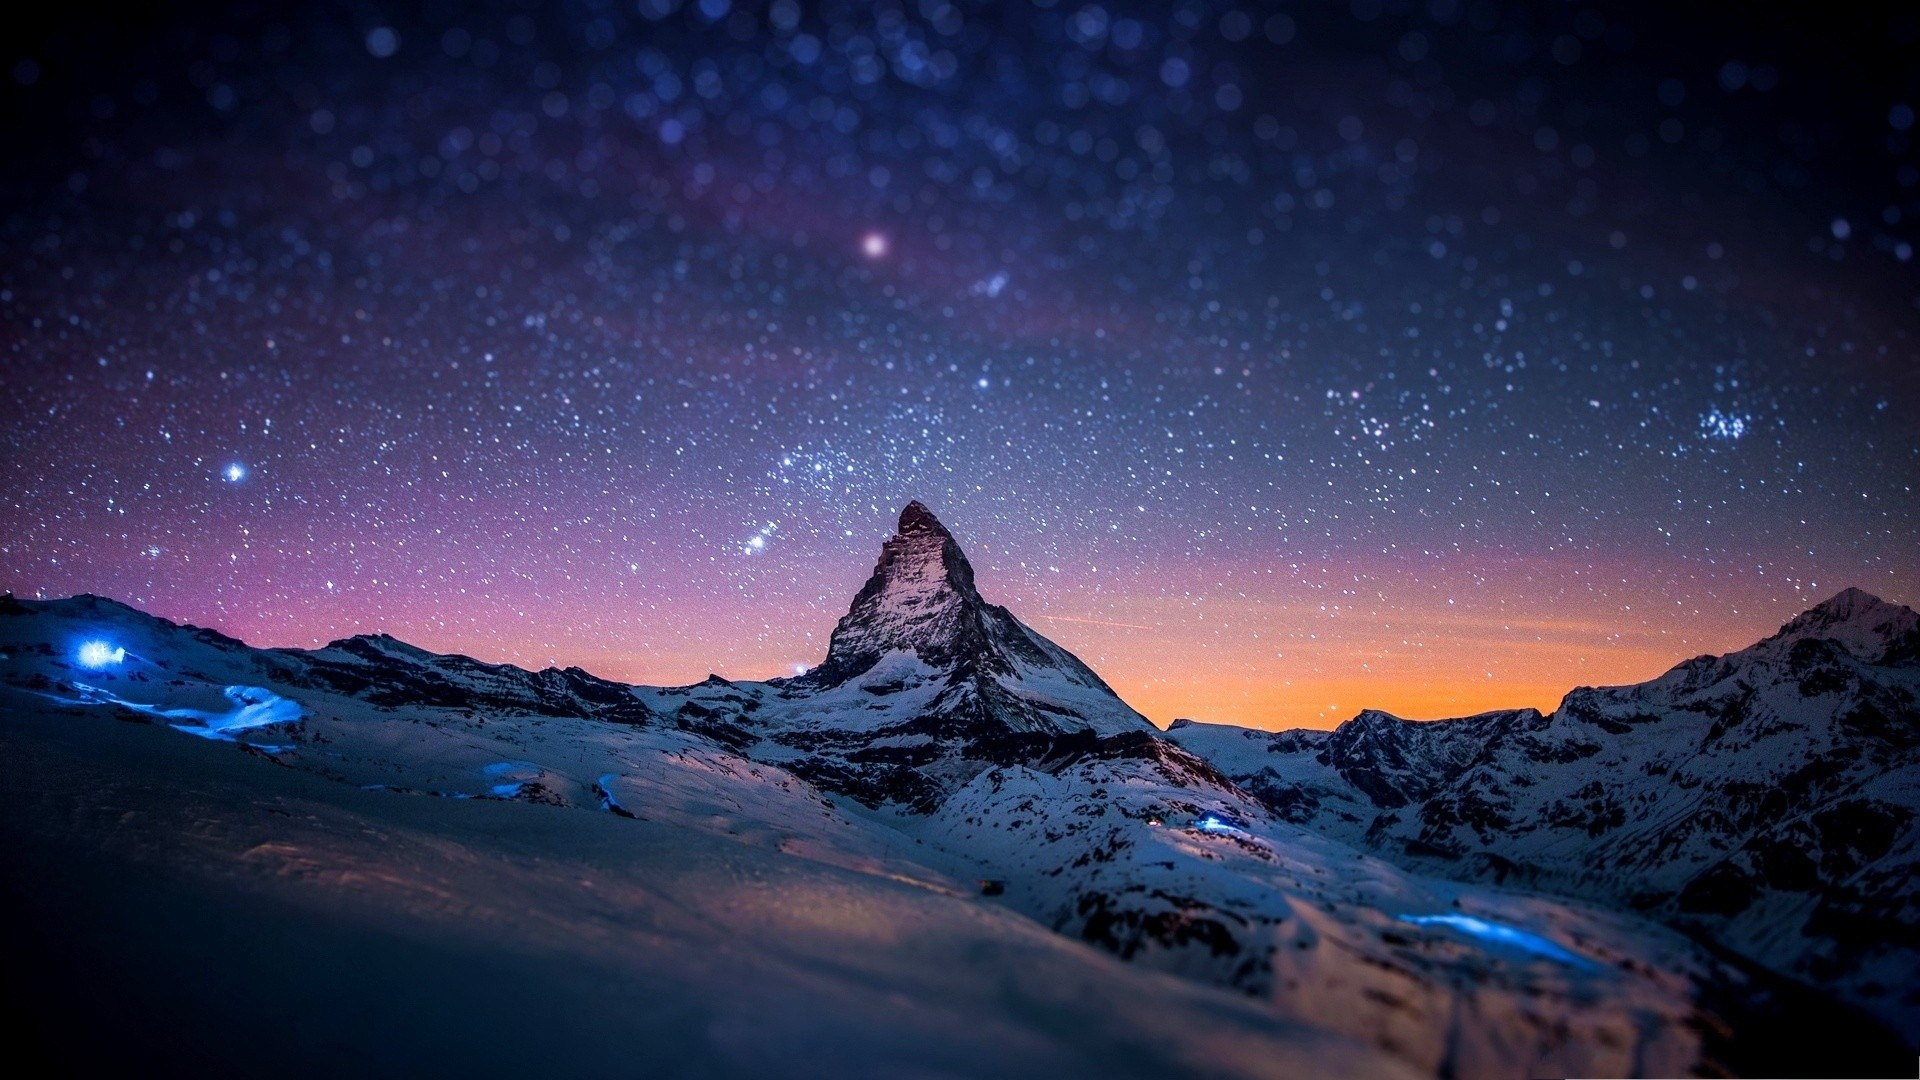 Winter Night HD Wallpapers : Find best latest Winter Night HD Wallpapers  for your PC desktop background & mobile phones.